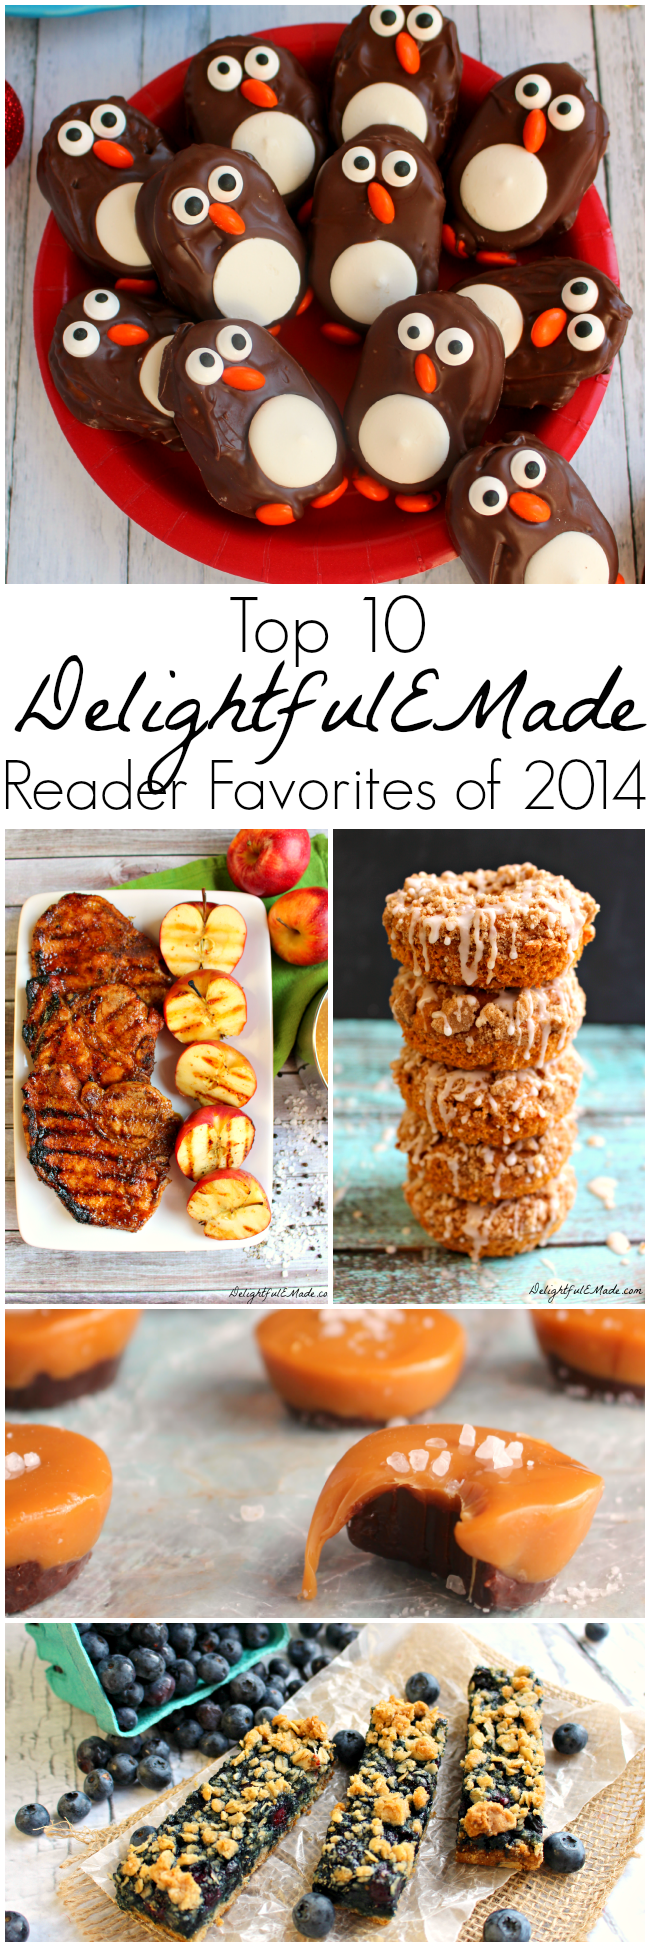 The most popular posts on Delightful E Made! All of the best recipes in one post!